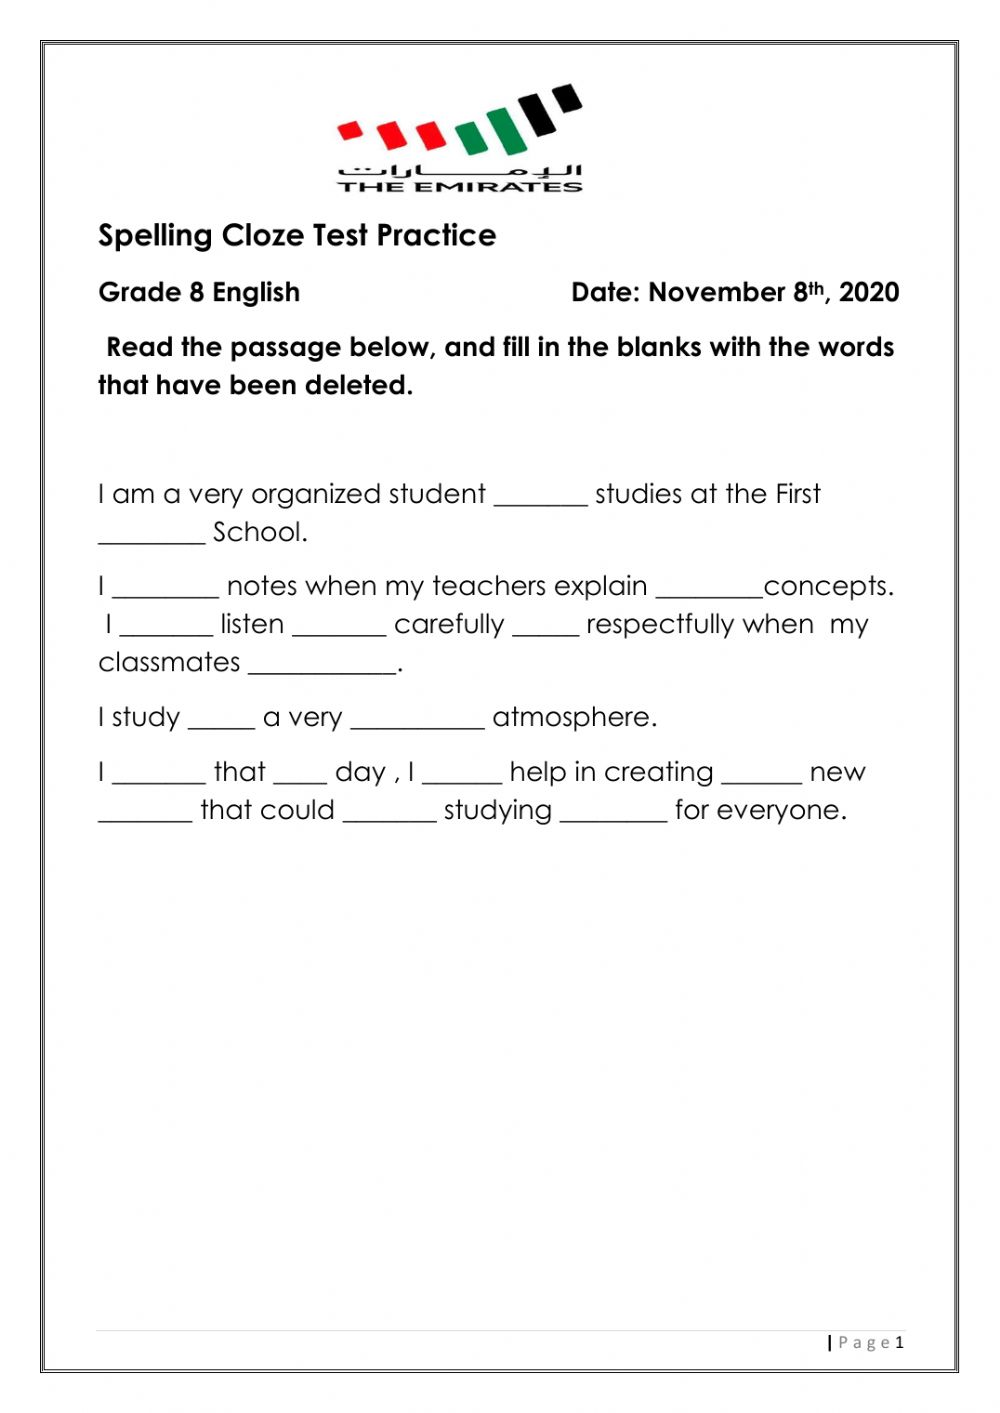 medium resolution of Spelling cloze test practice worksheet